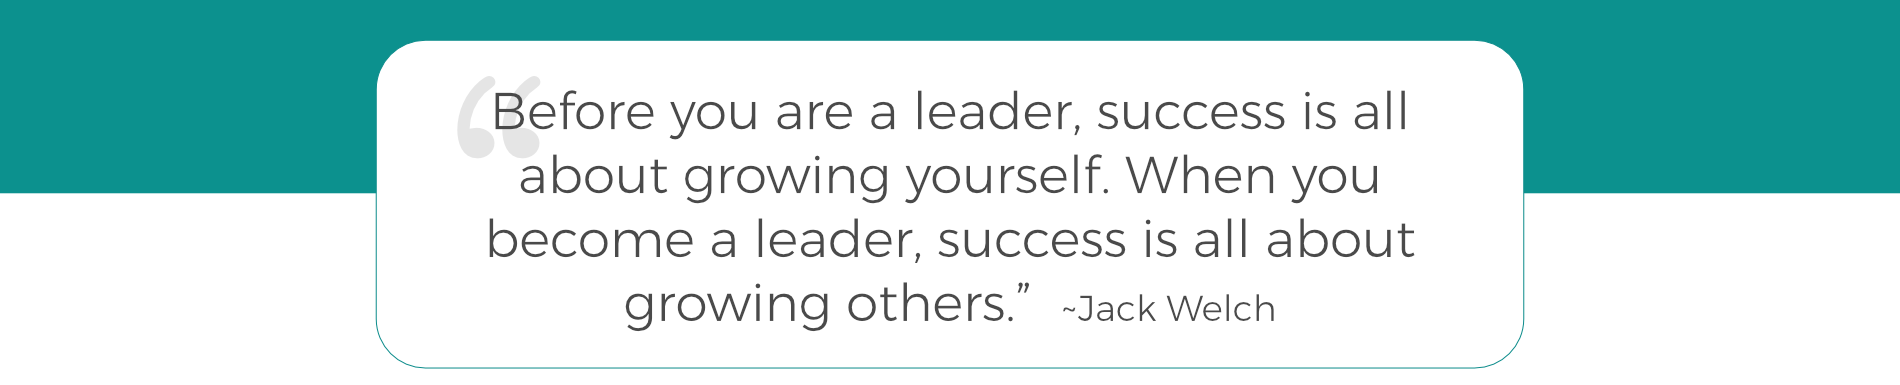 About Lisa - Jack Welch Quote